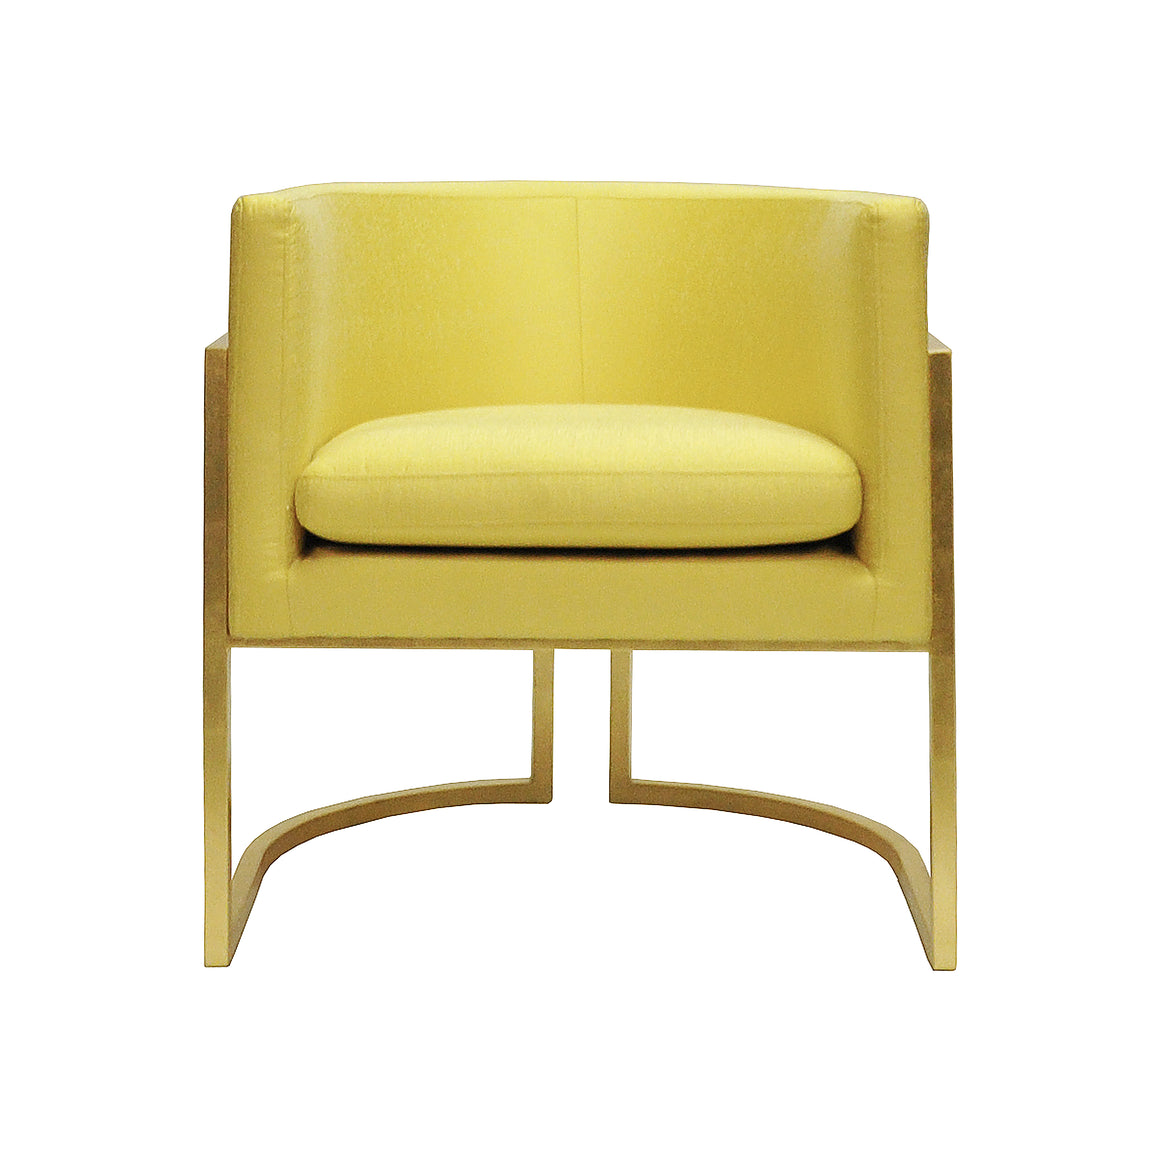 Worlds Away Jenna Barrel Arm Chair with Gold Leaf Frame - Citron Upholstery